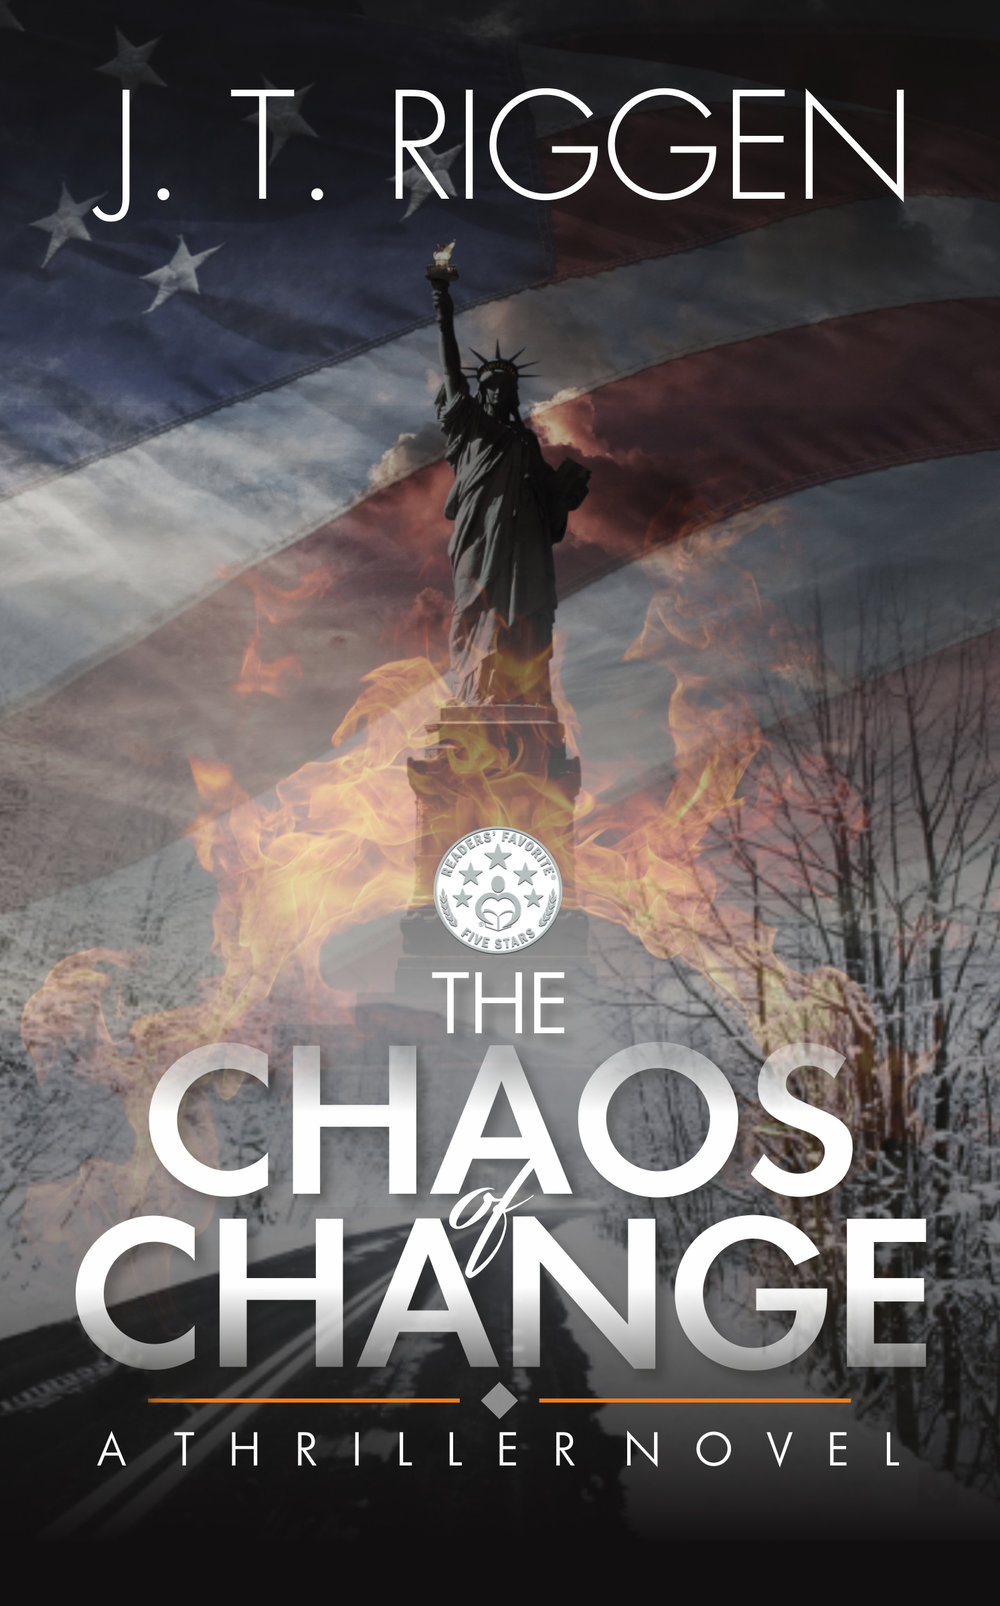 My newest novel, The Chaos of Change.  Check out the NOVELS tab to catch a glimpse of what this epic, cross-national, political thriller is all about! It's already received distinction among critics, earning a 5-star seal-of-approval from Readers Favorite Books, Underground Certified badge from Underground Book Reviews, and a seal-of-approval from Midwest Books.    CLICK HERE    and get your copy today through Amazon.